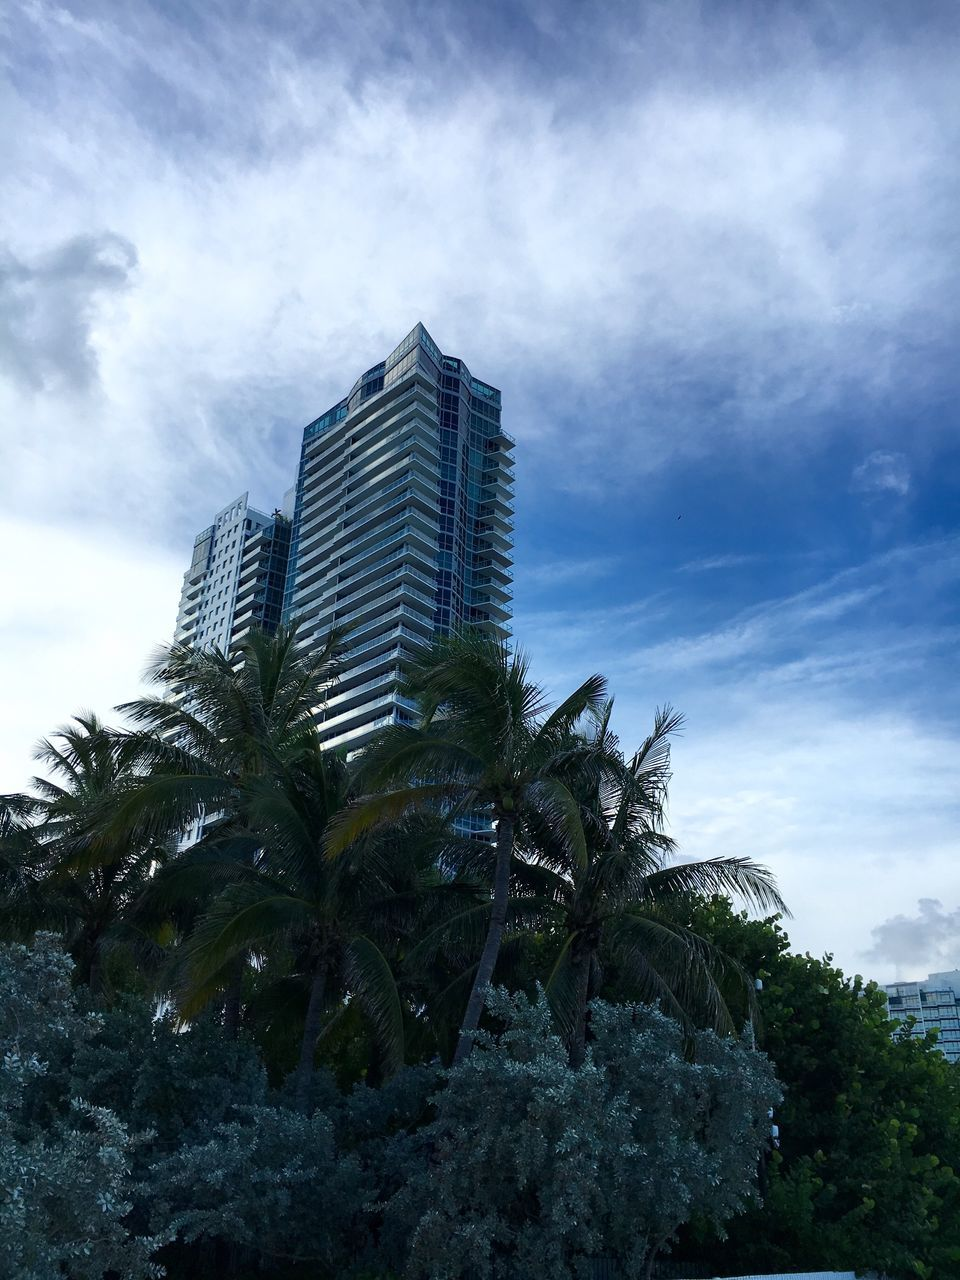 palm tree, sky, tree, architecture, growth, building exterior, skyscraper, no people, cloud - sky, built structure, city, outdoors, nature, modern, day